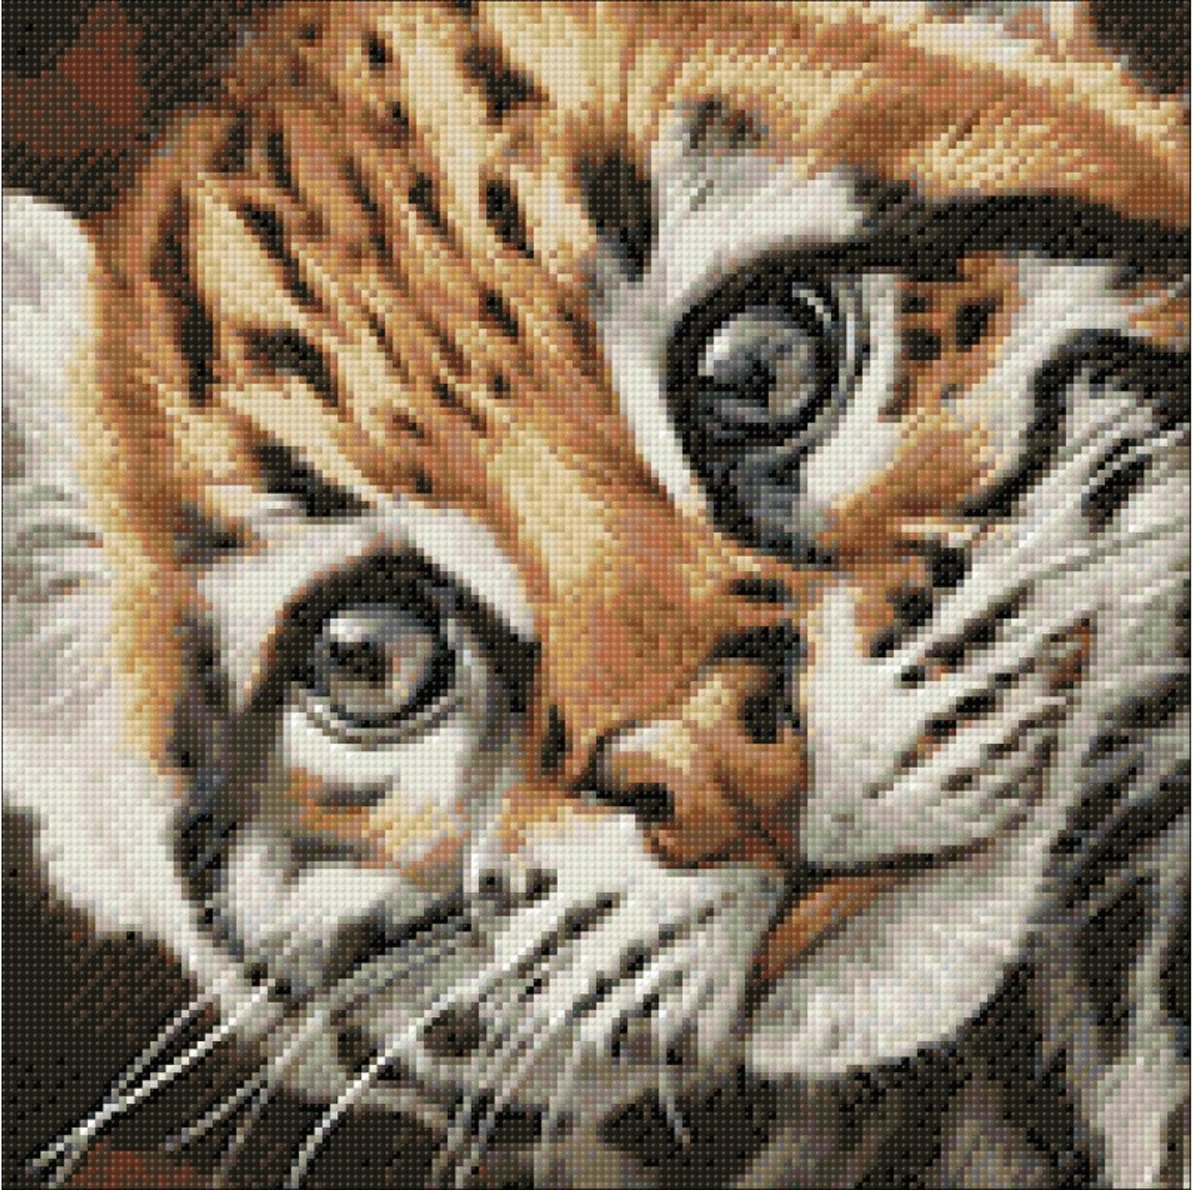 Wizardi Diamond Painting Kit Ocelot Kitten WD2427